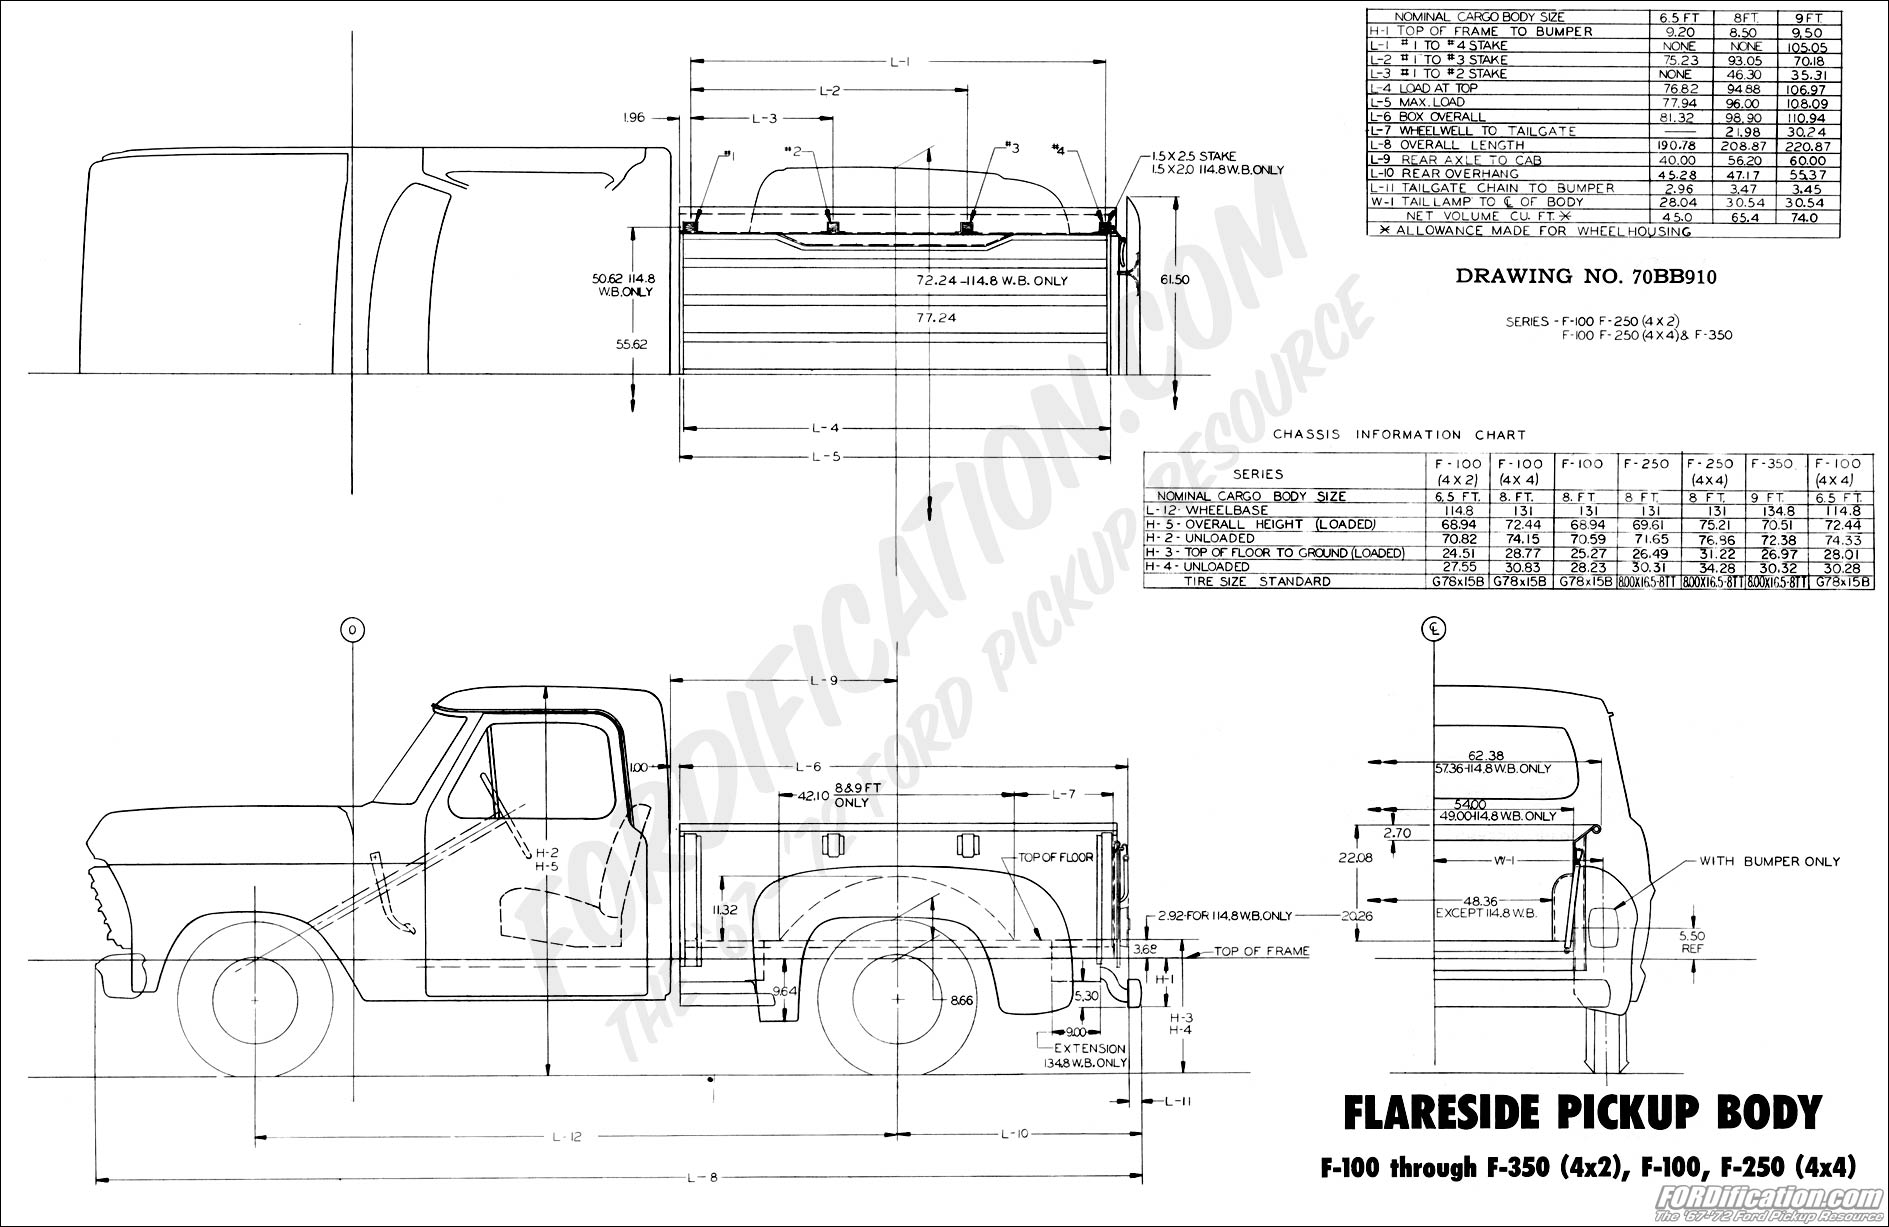 76 ford f100 wiring diagram 1970 body builder s layout book fordification com  1970 body builder s layout book fordification com